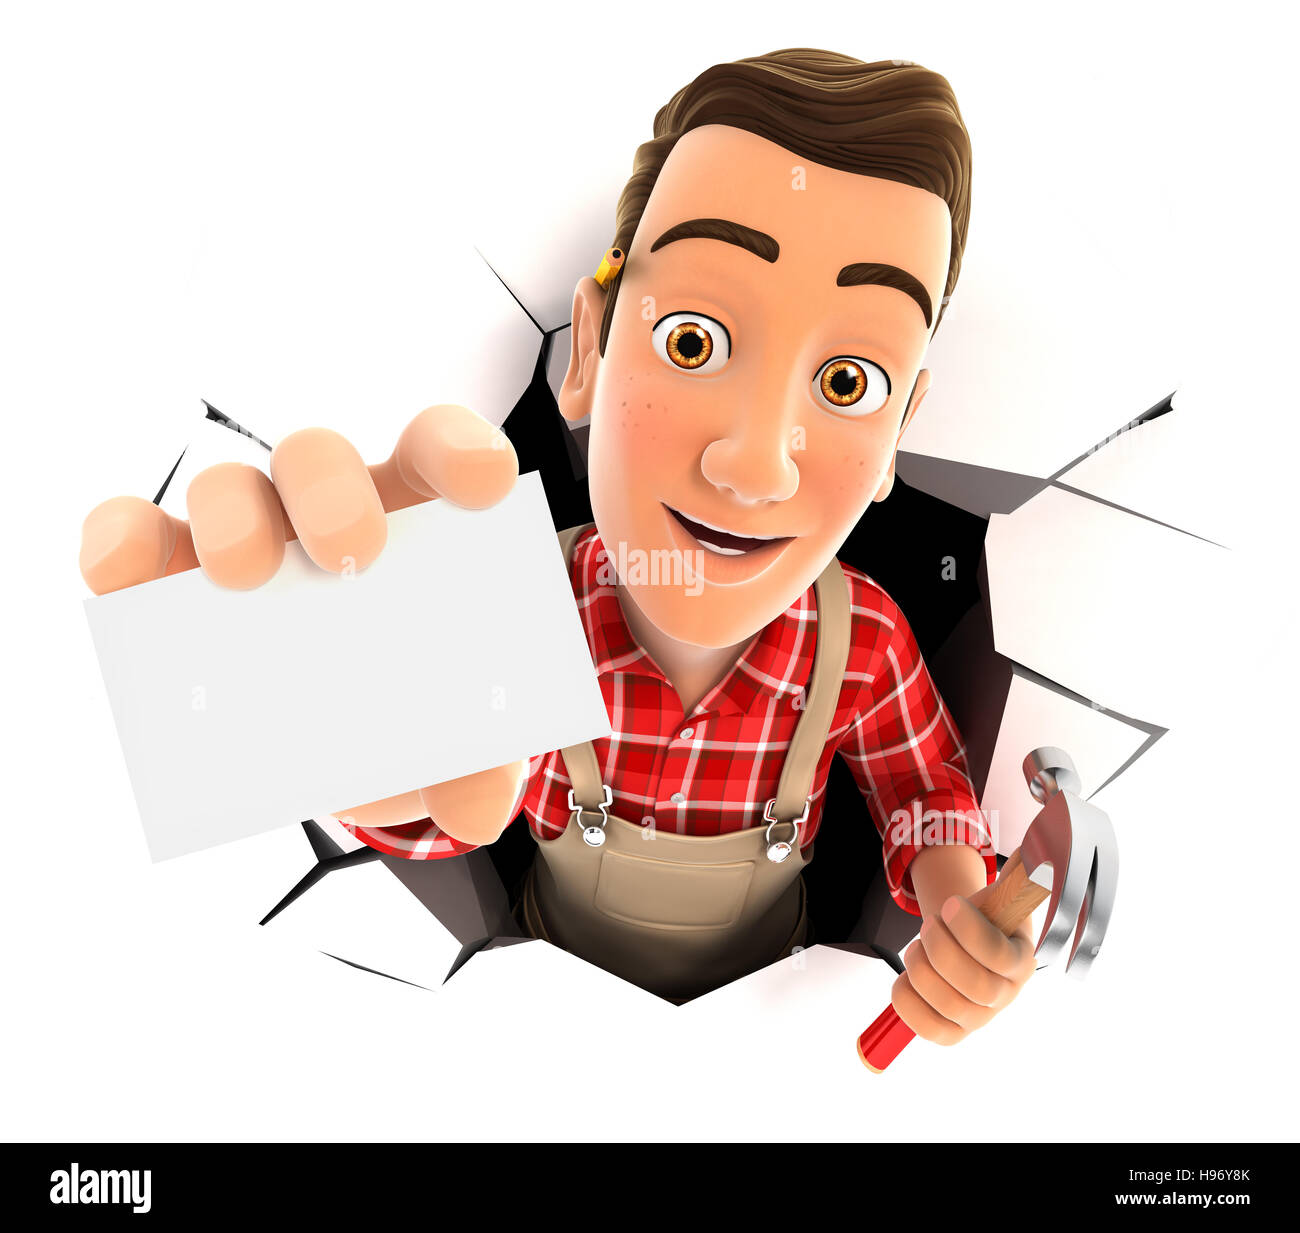 3d handyman coming out through a wall with company card, illustration with isolated white background Stock Photo